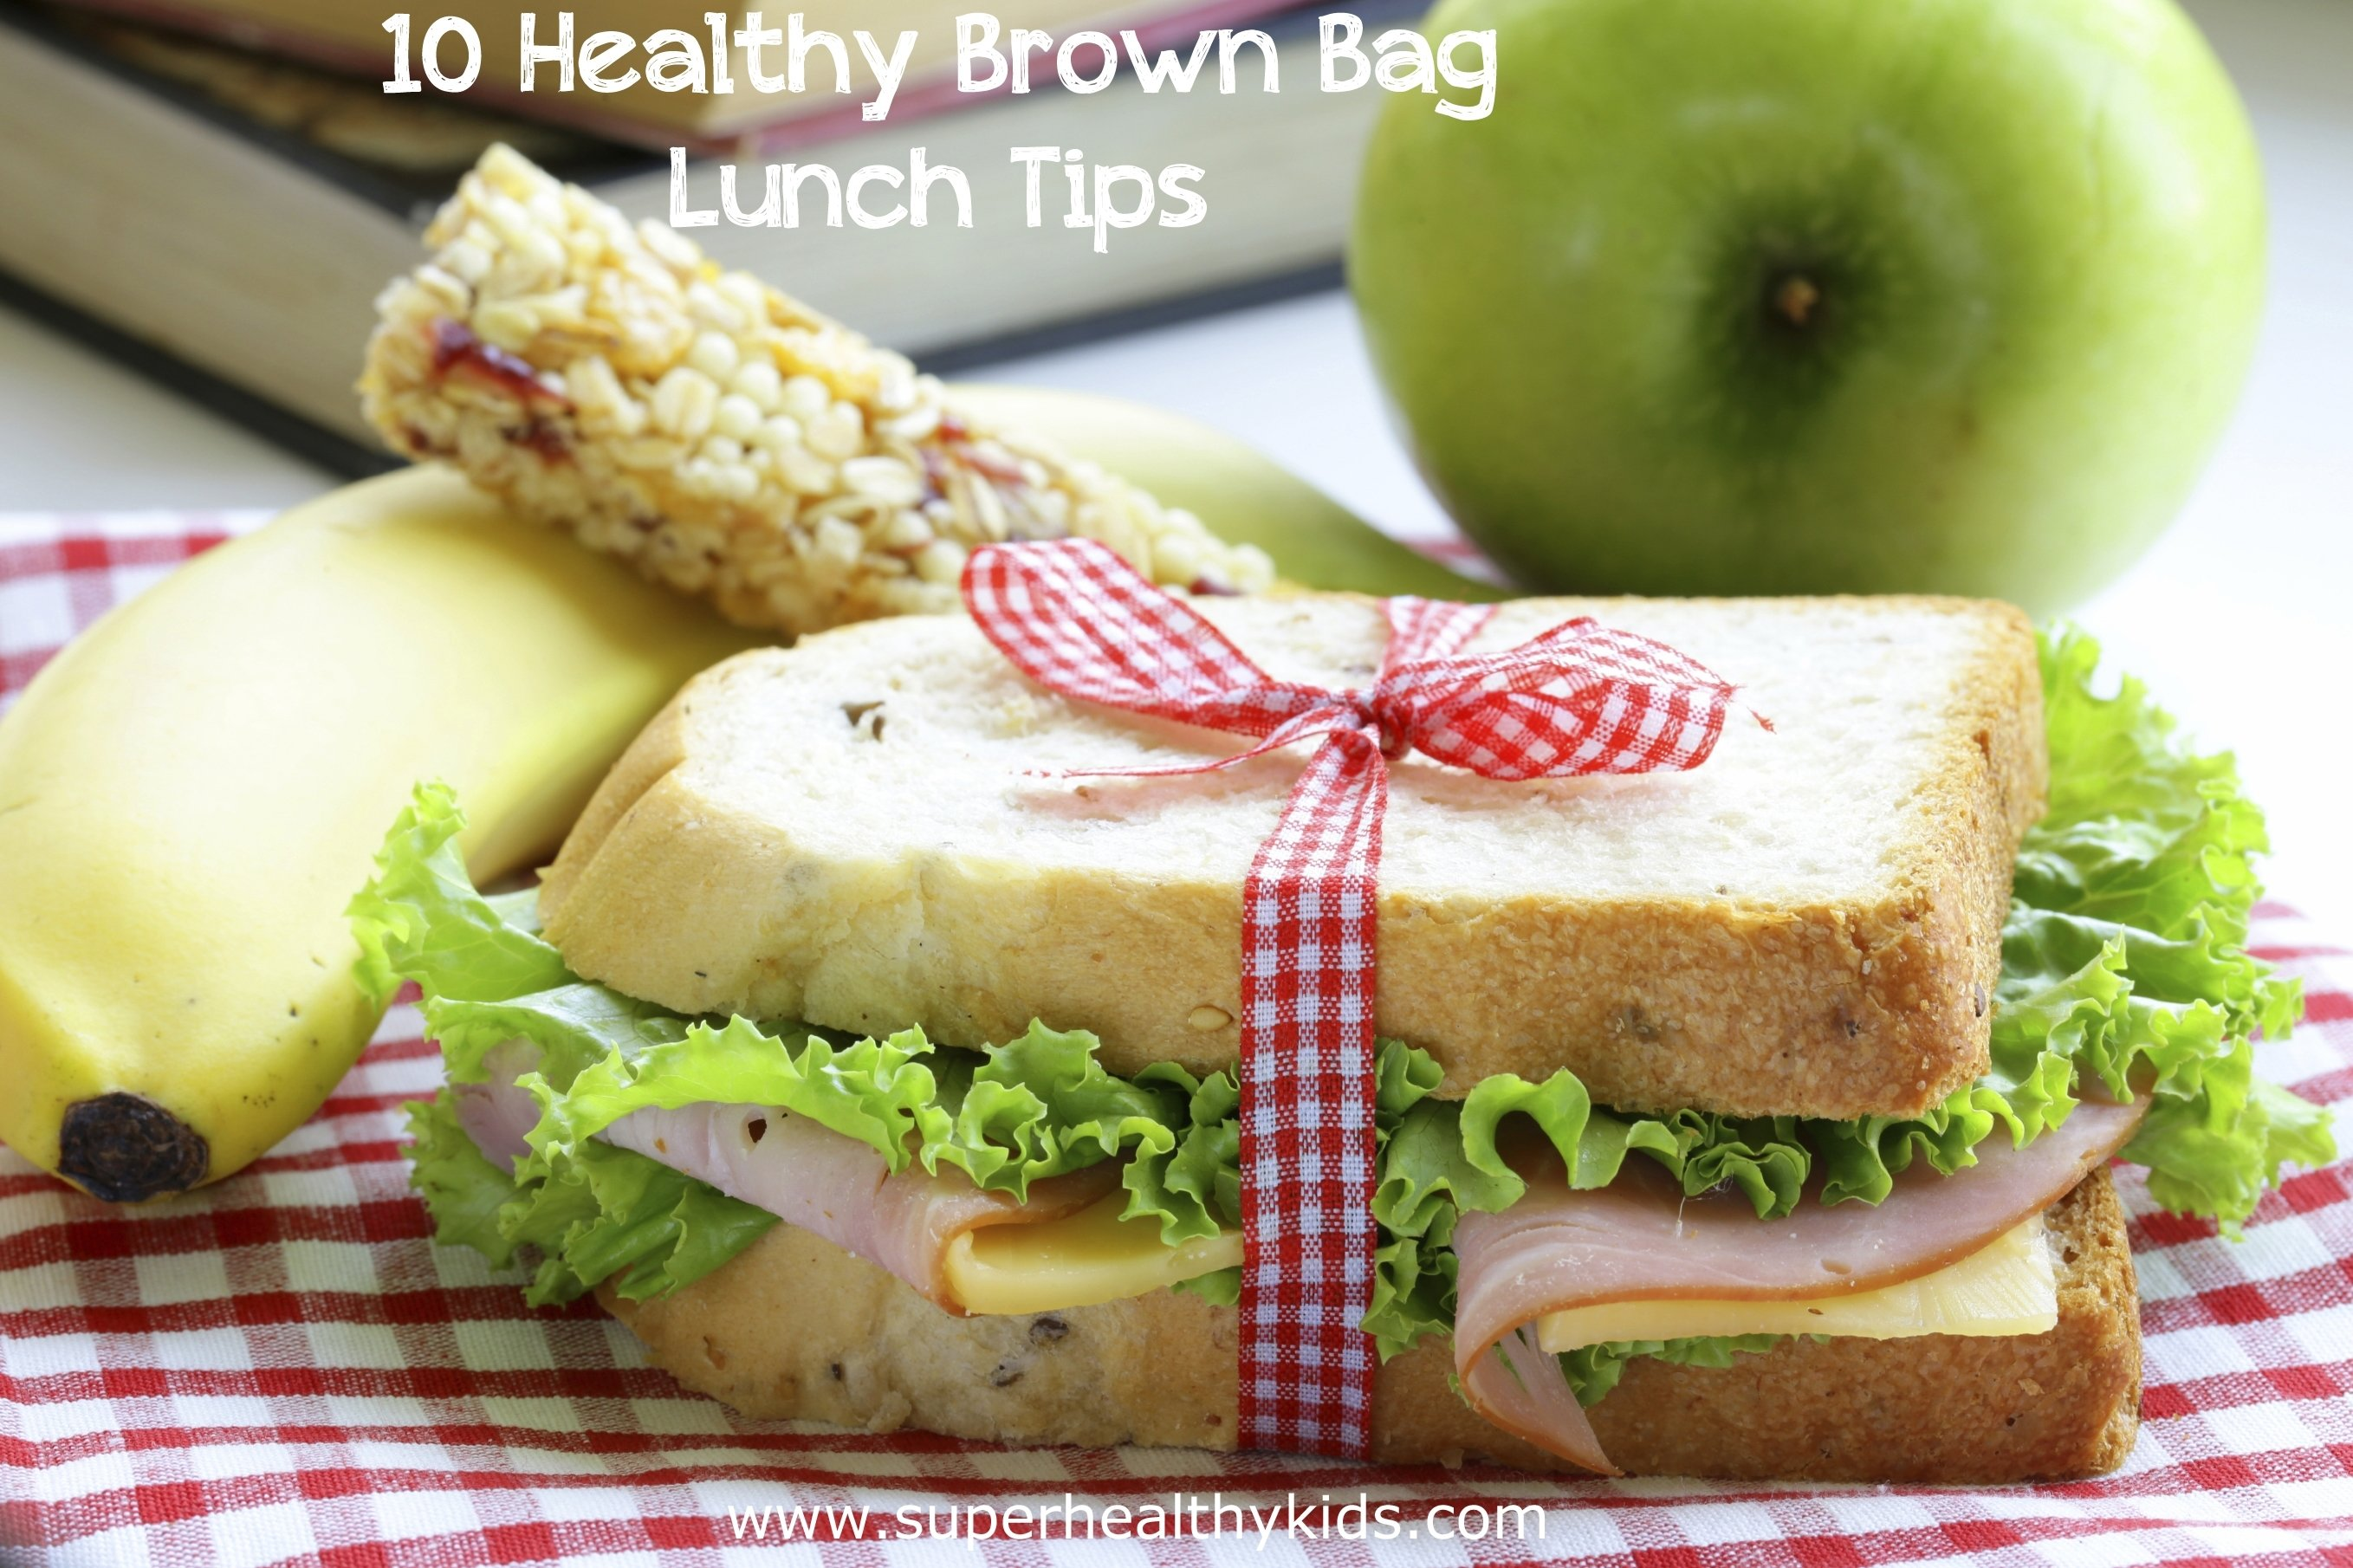 10 healthy brown bag lunch tips | healthy ideas for kids